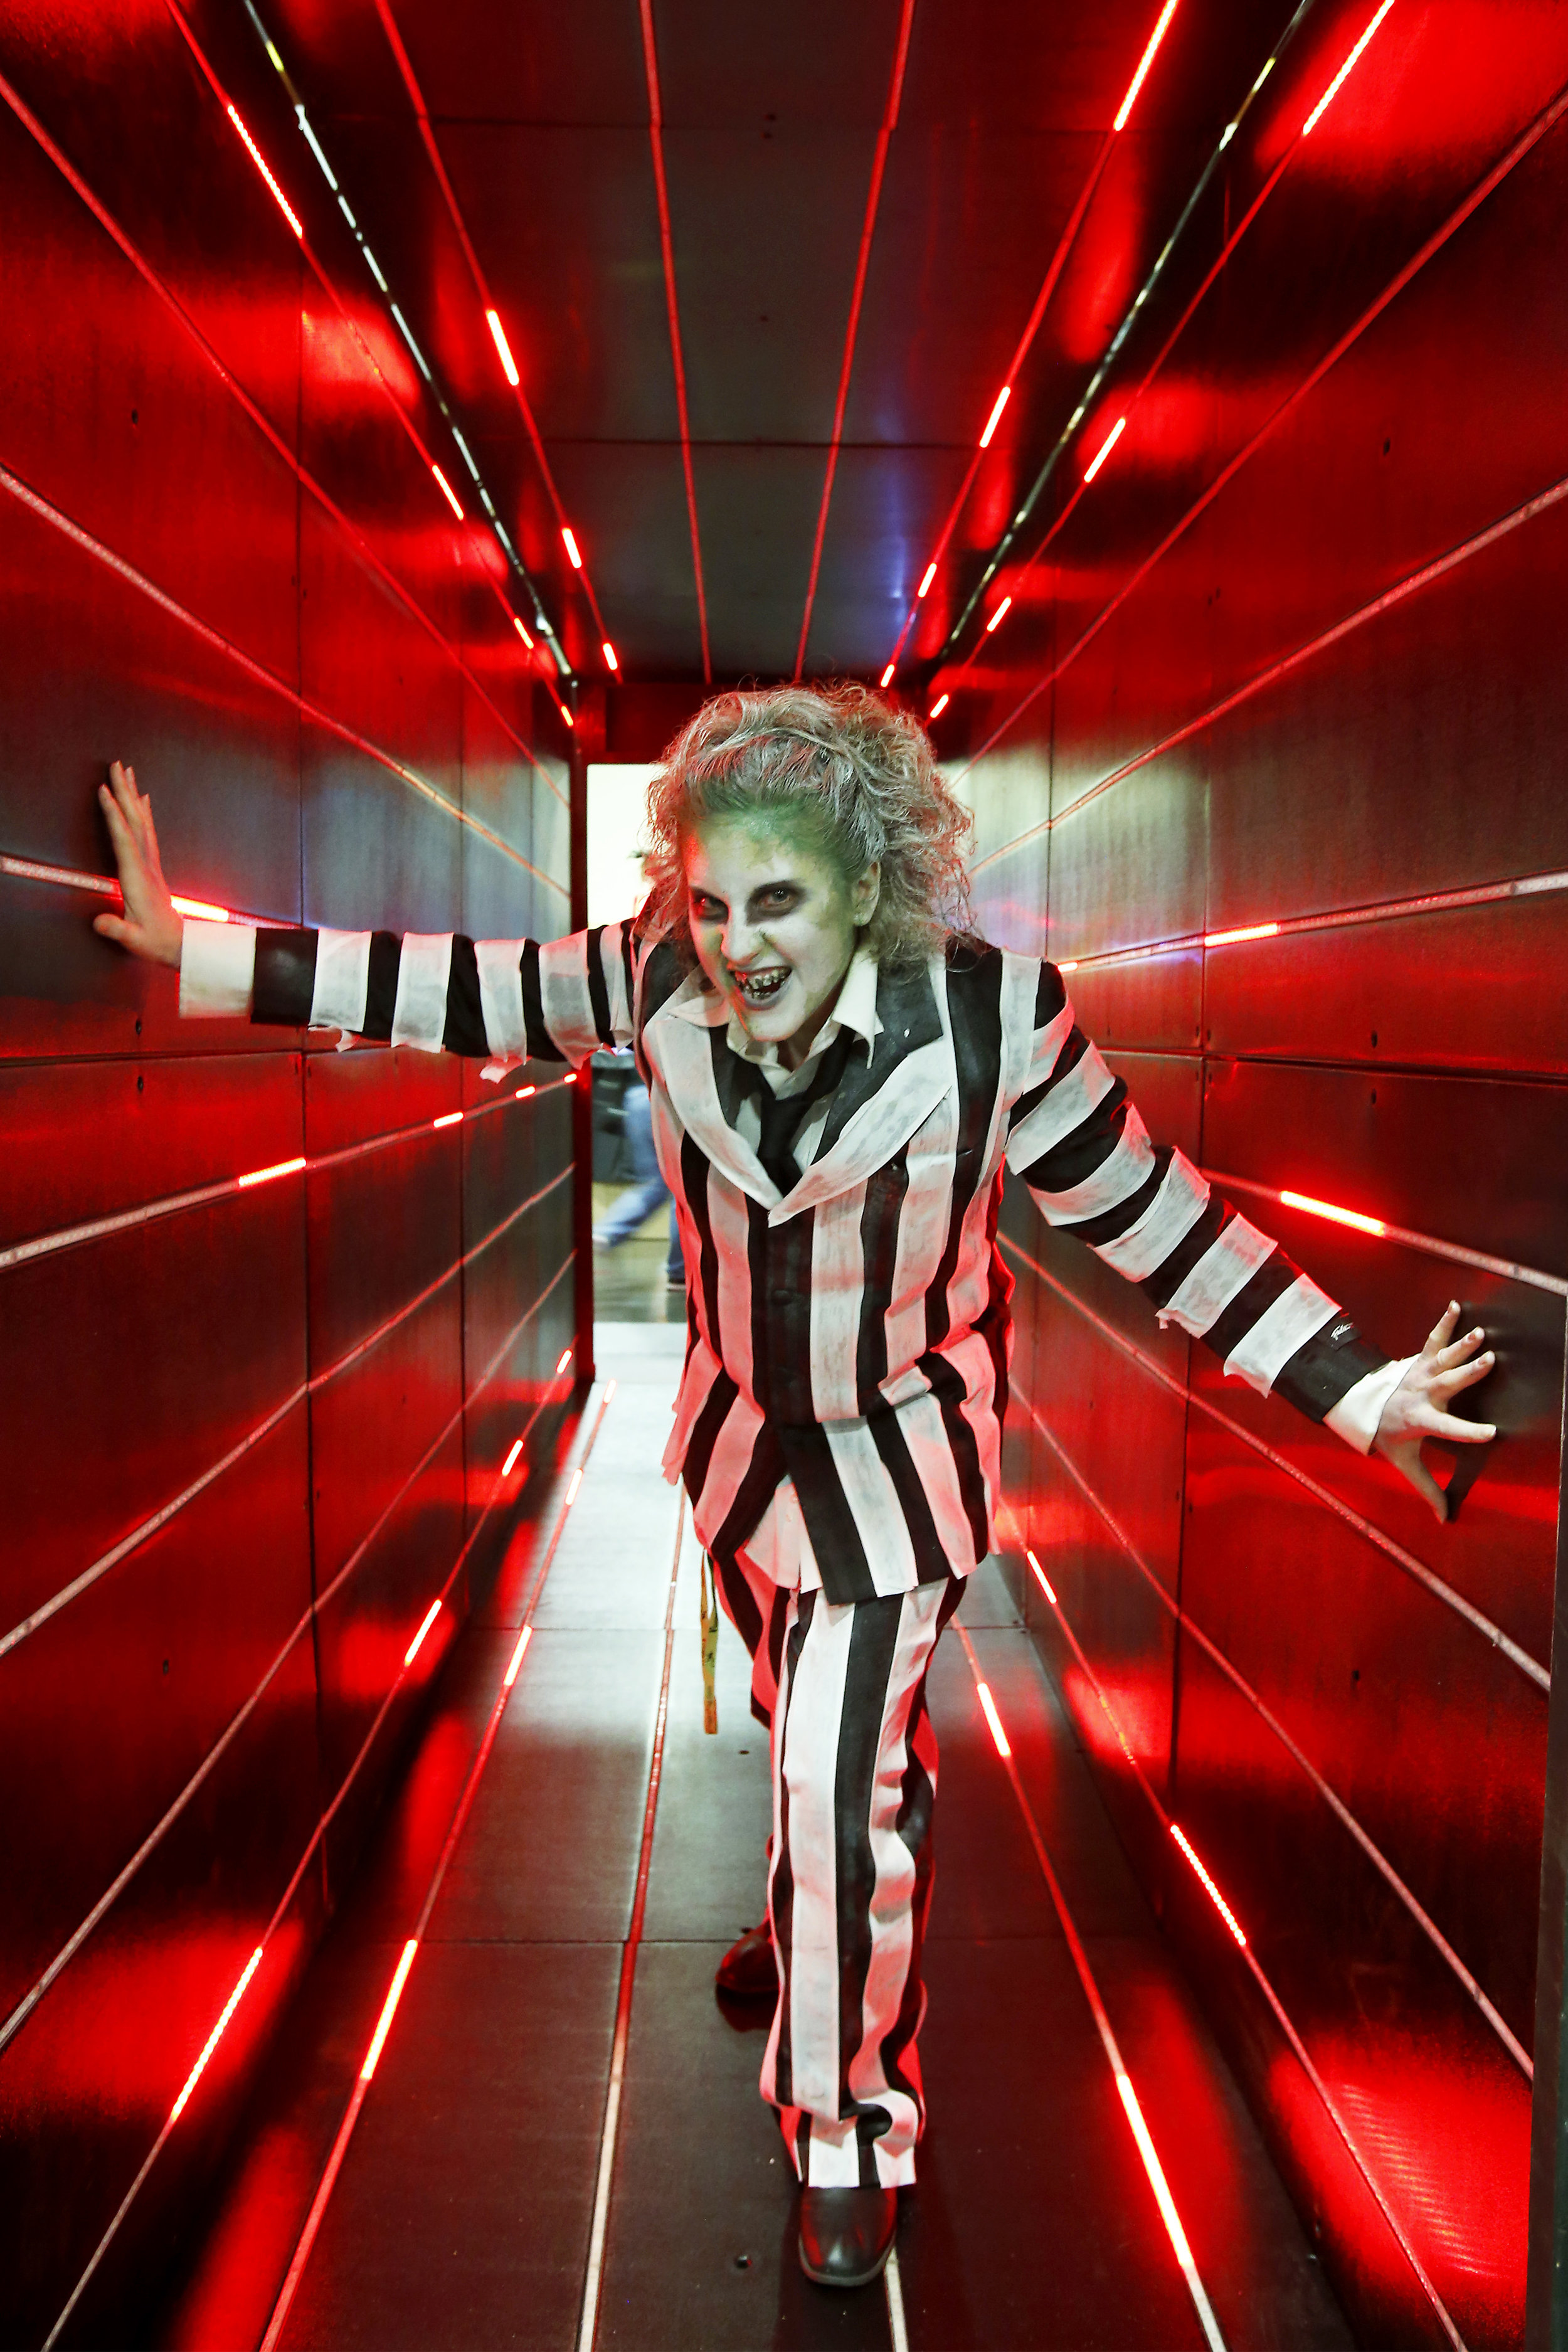 Emily Adelman of Grove City dresses as Beetlejuice at the annual Midwest Haunter Convention in the Greater Columbus Convention Center on Sunday, June 8, 2014. It took Adelman two and a half hours to put together her costume.